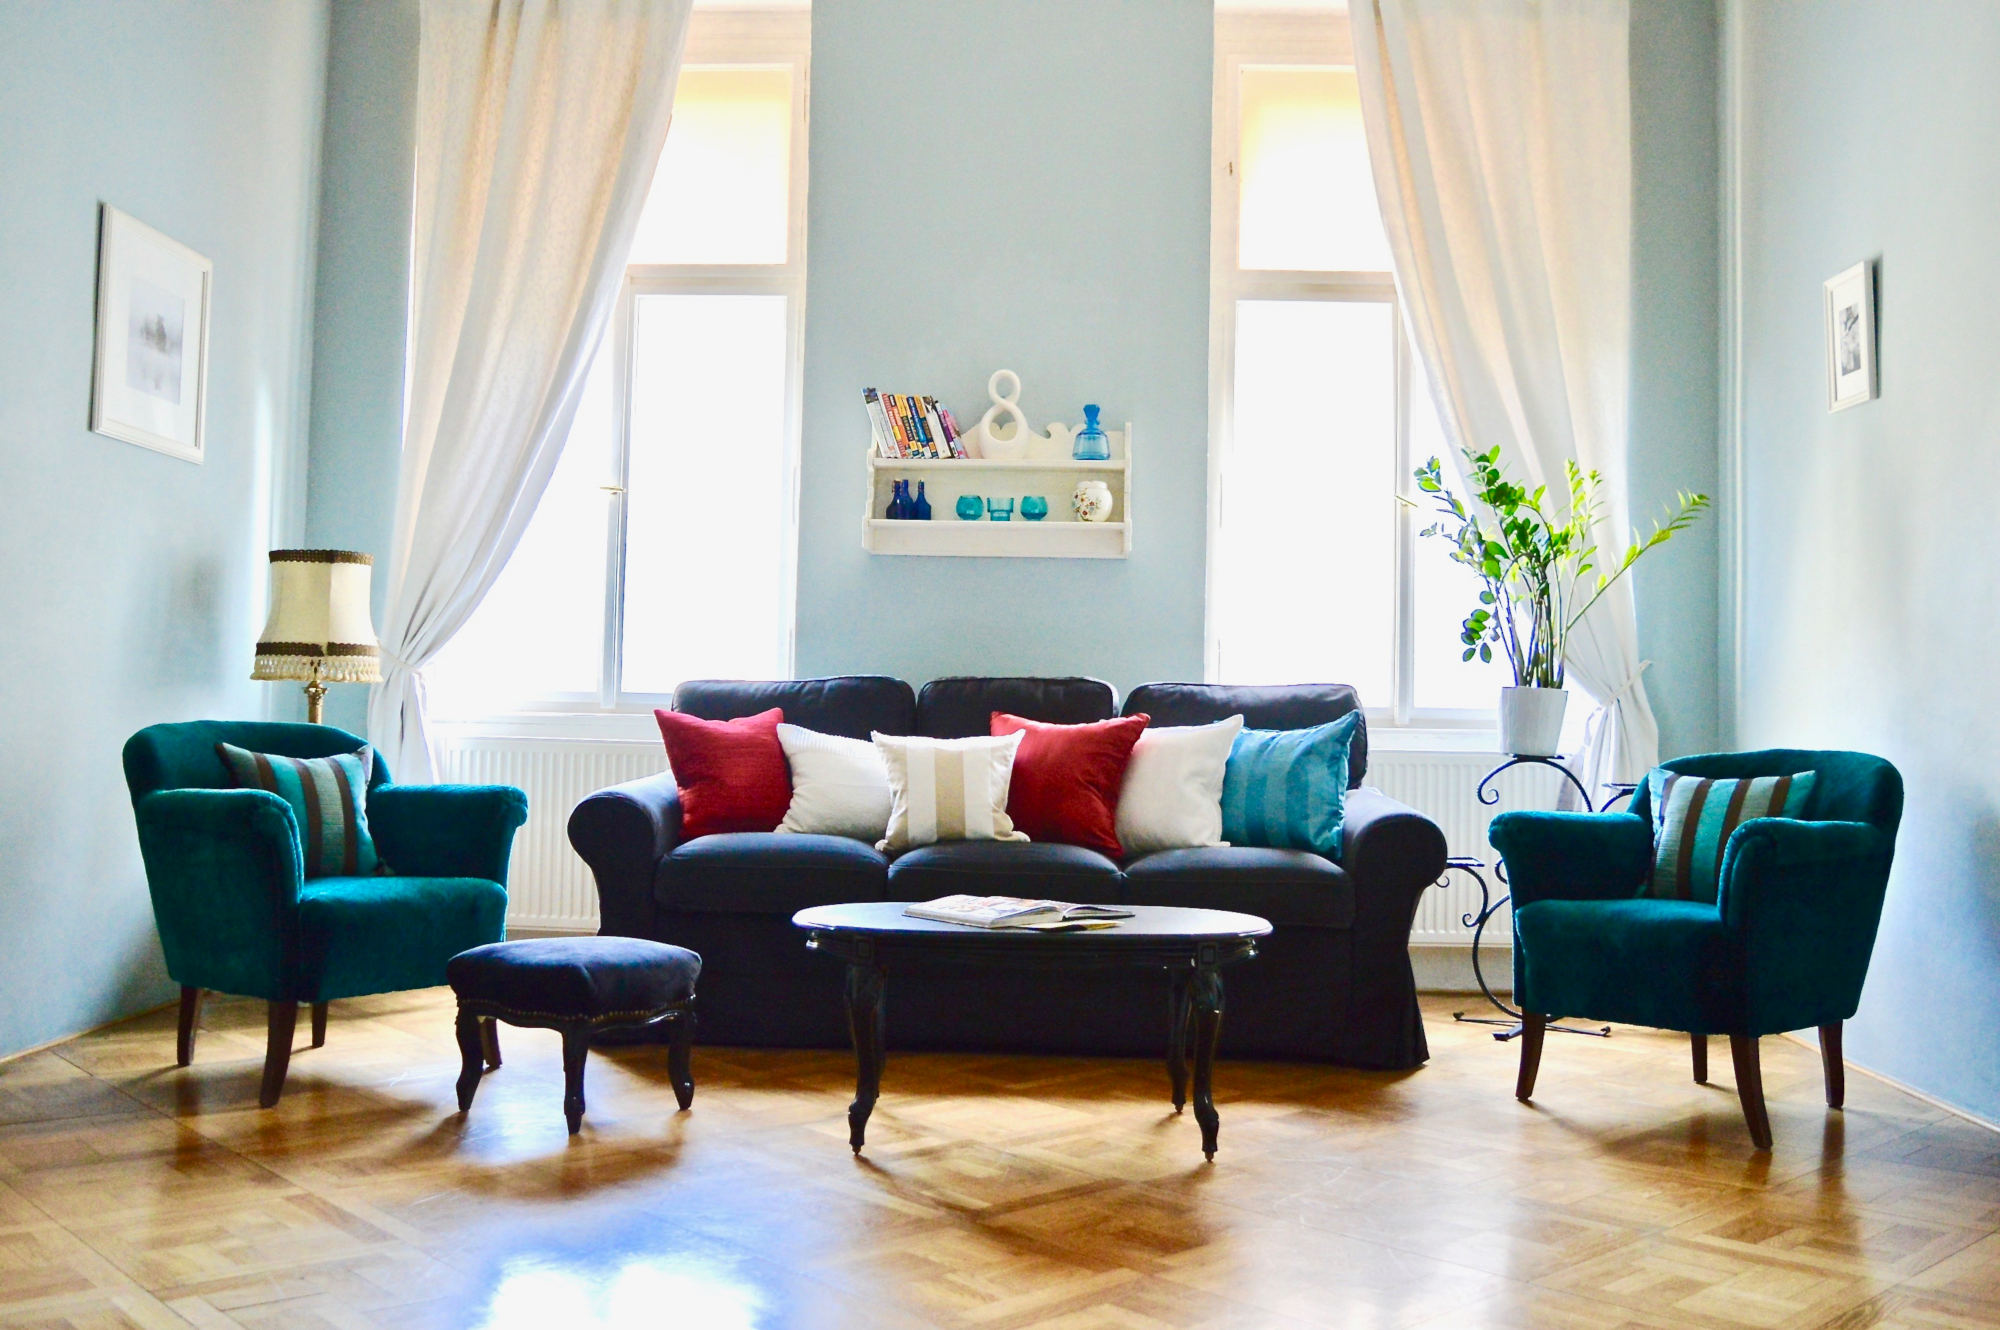 Central two bedroom apartment Prague - sofa bed